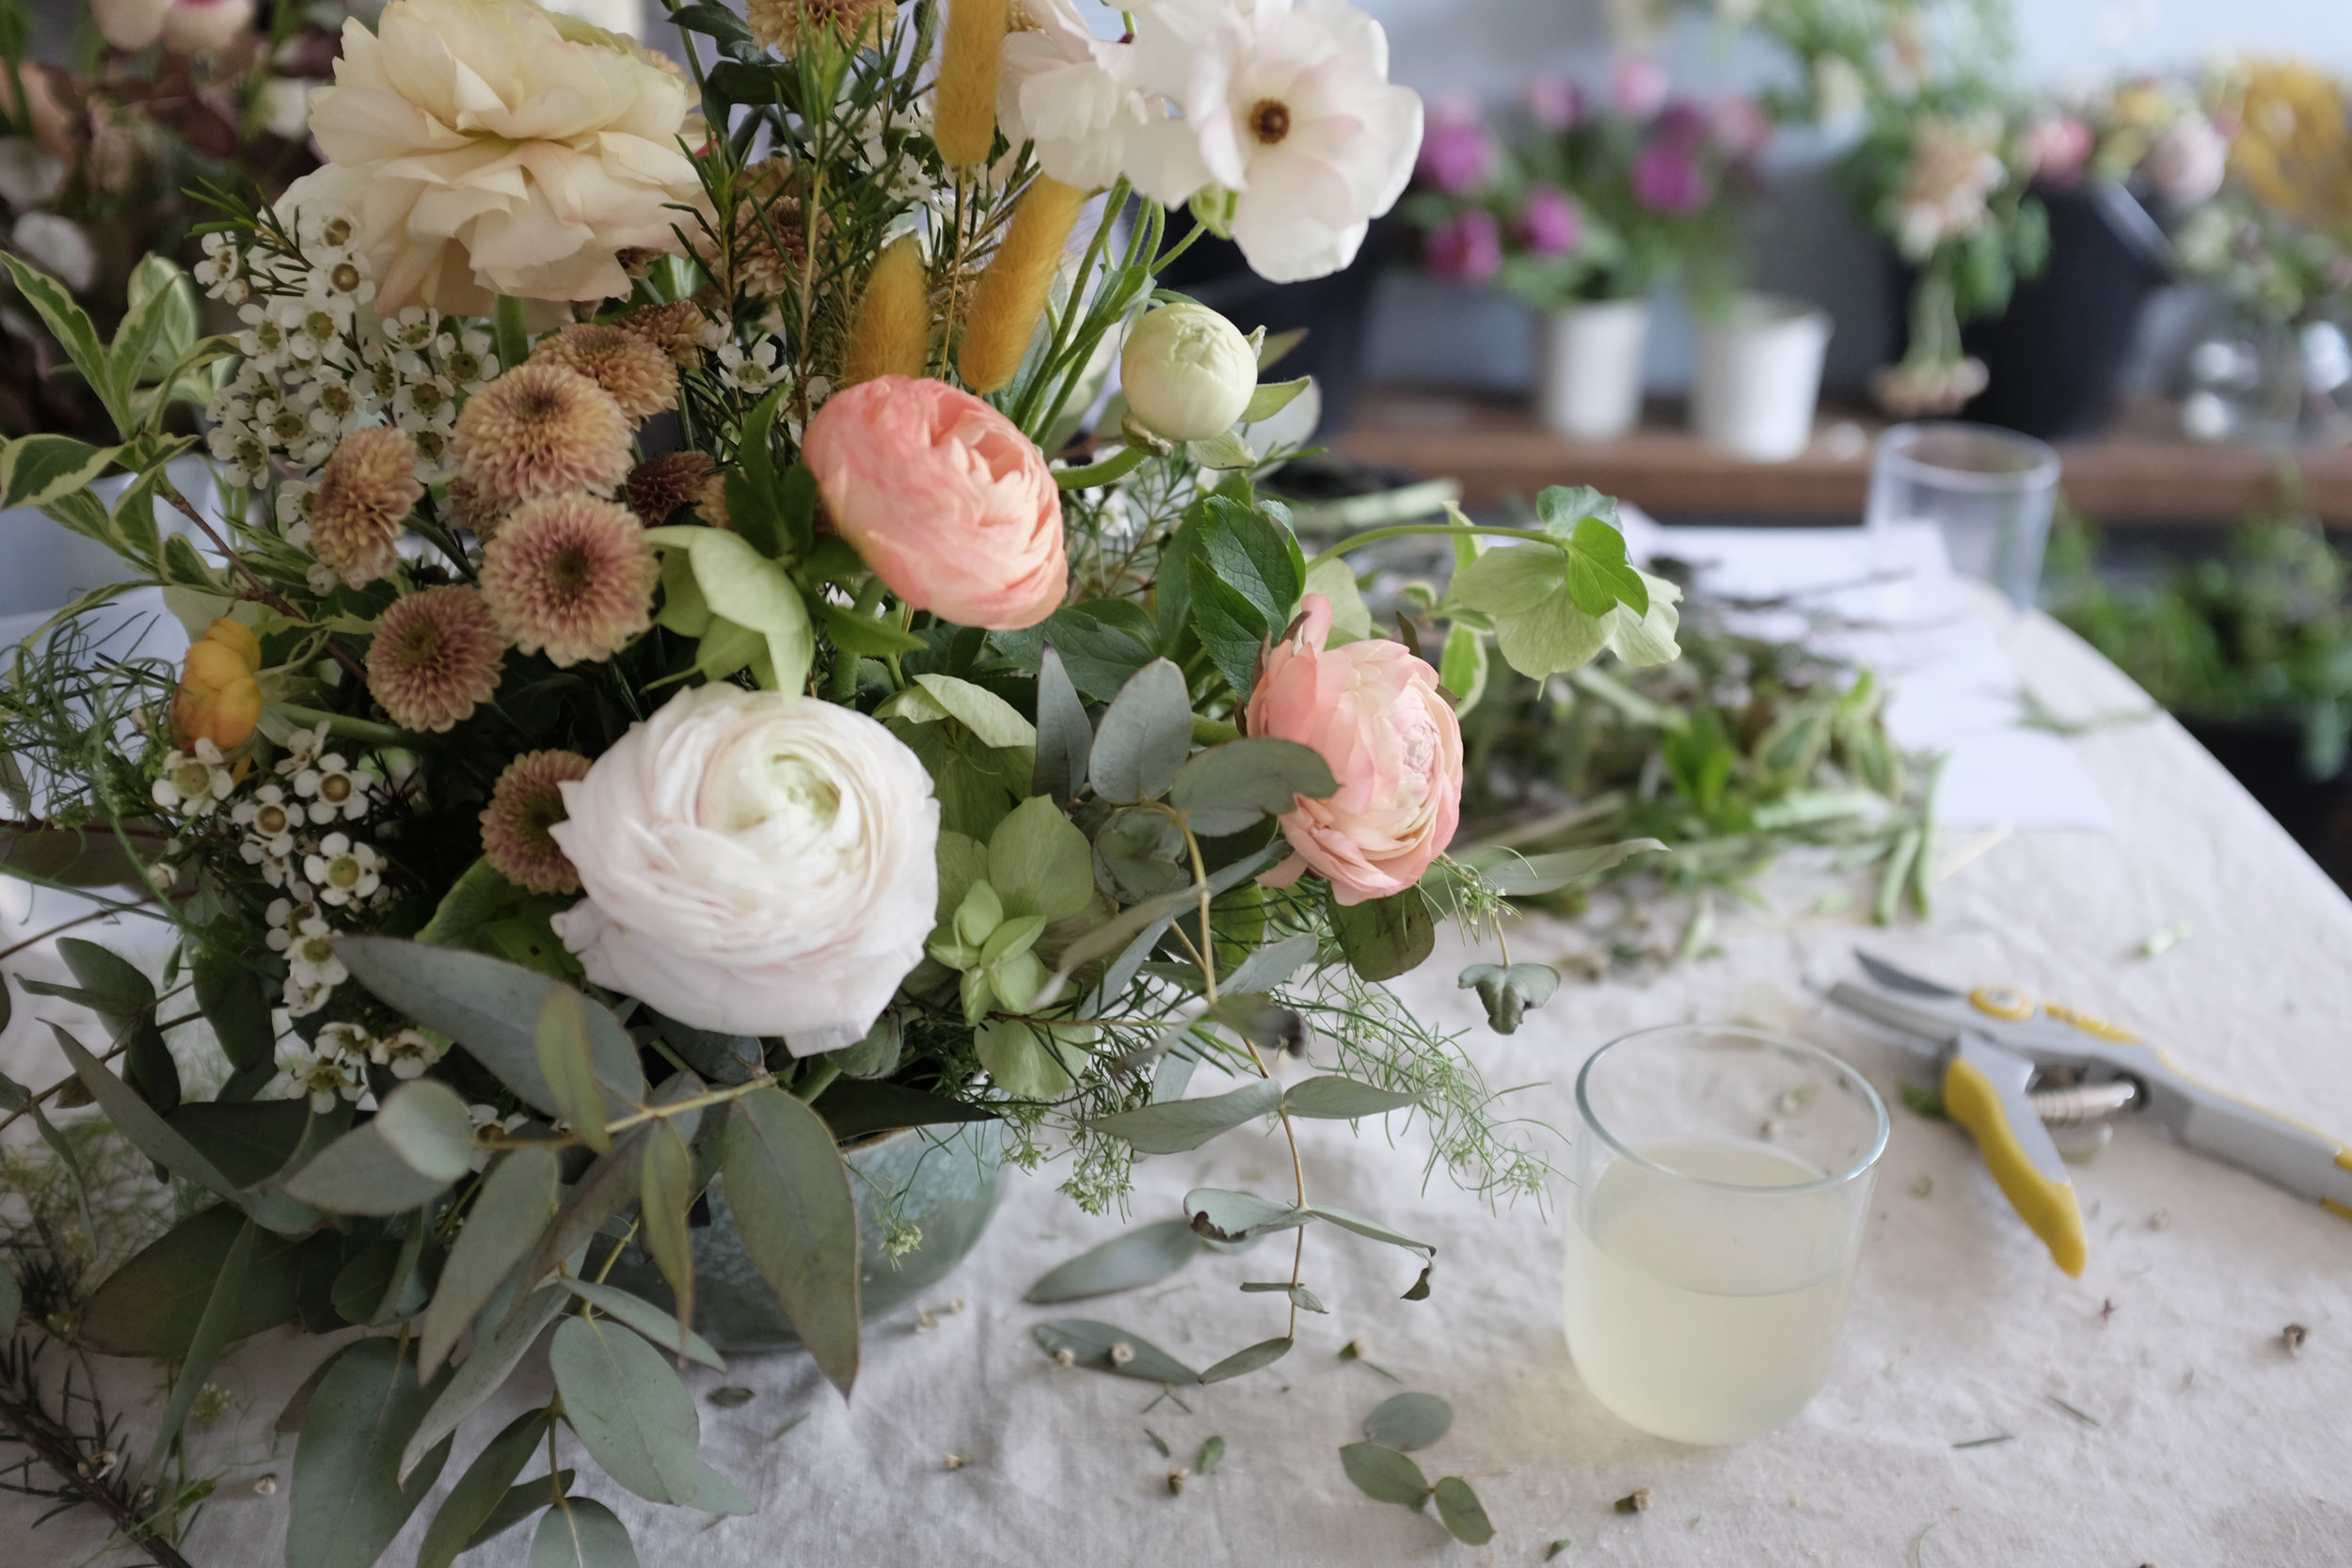 I took myself off to a floristry workshop. I am looking forward to attending more workshops this year.